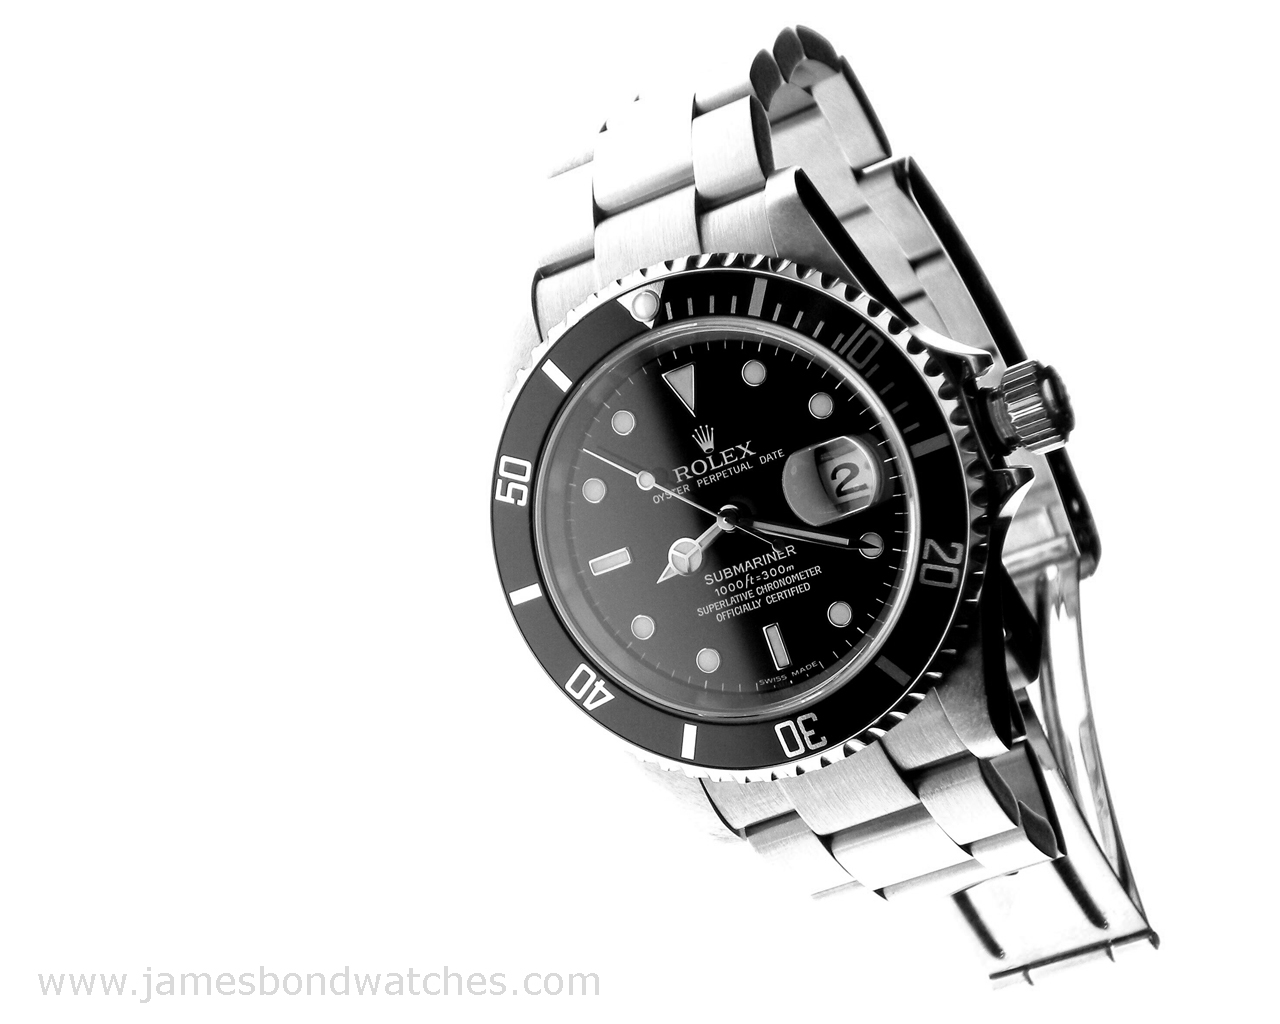 rolex submariner date images and wallpapers: james bond watches